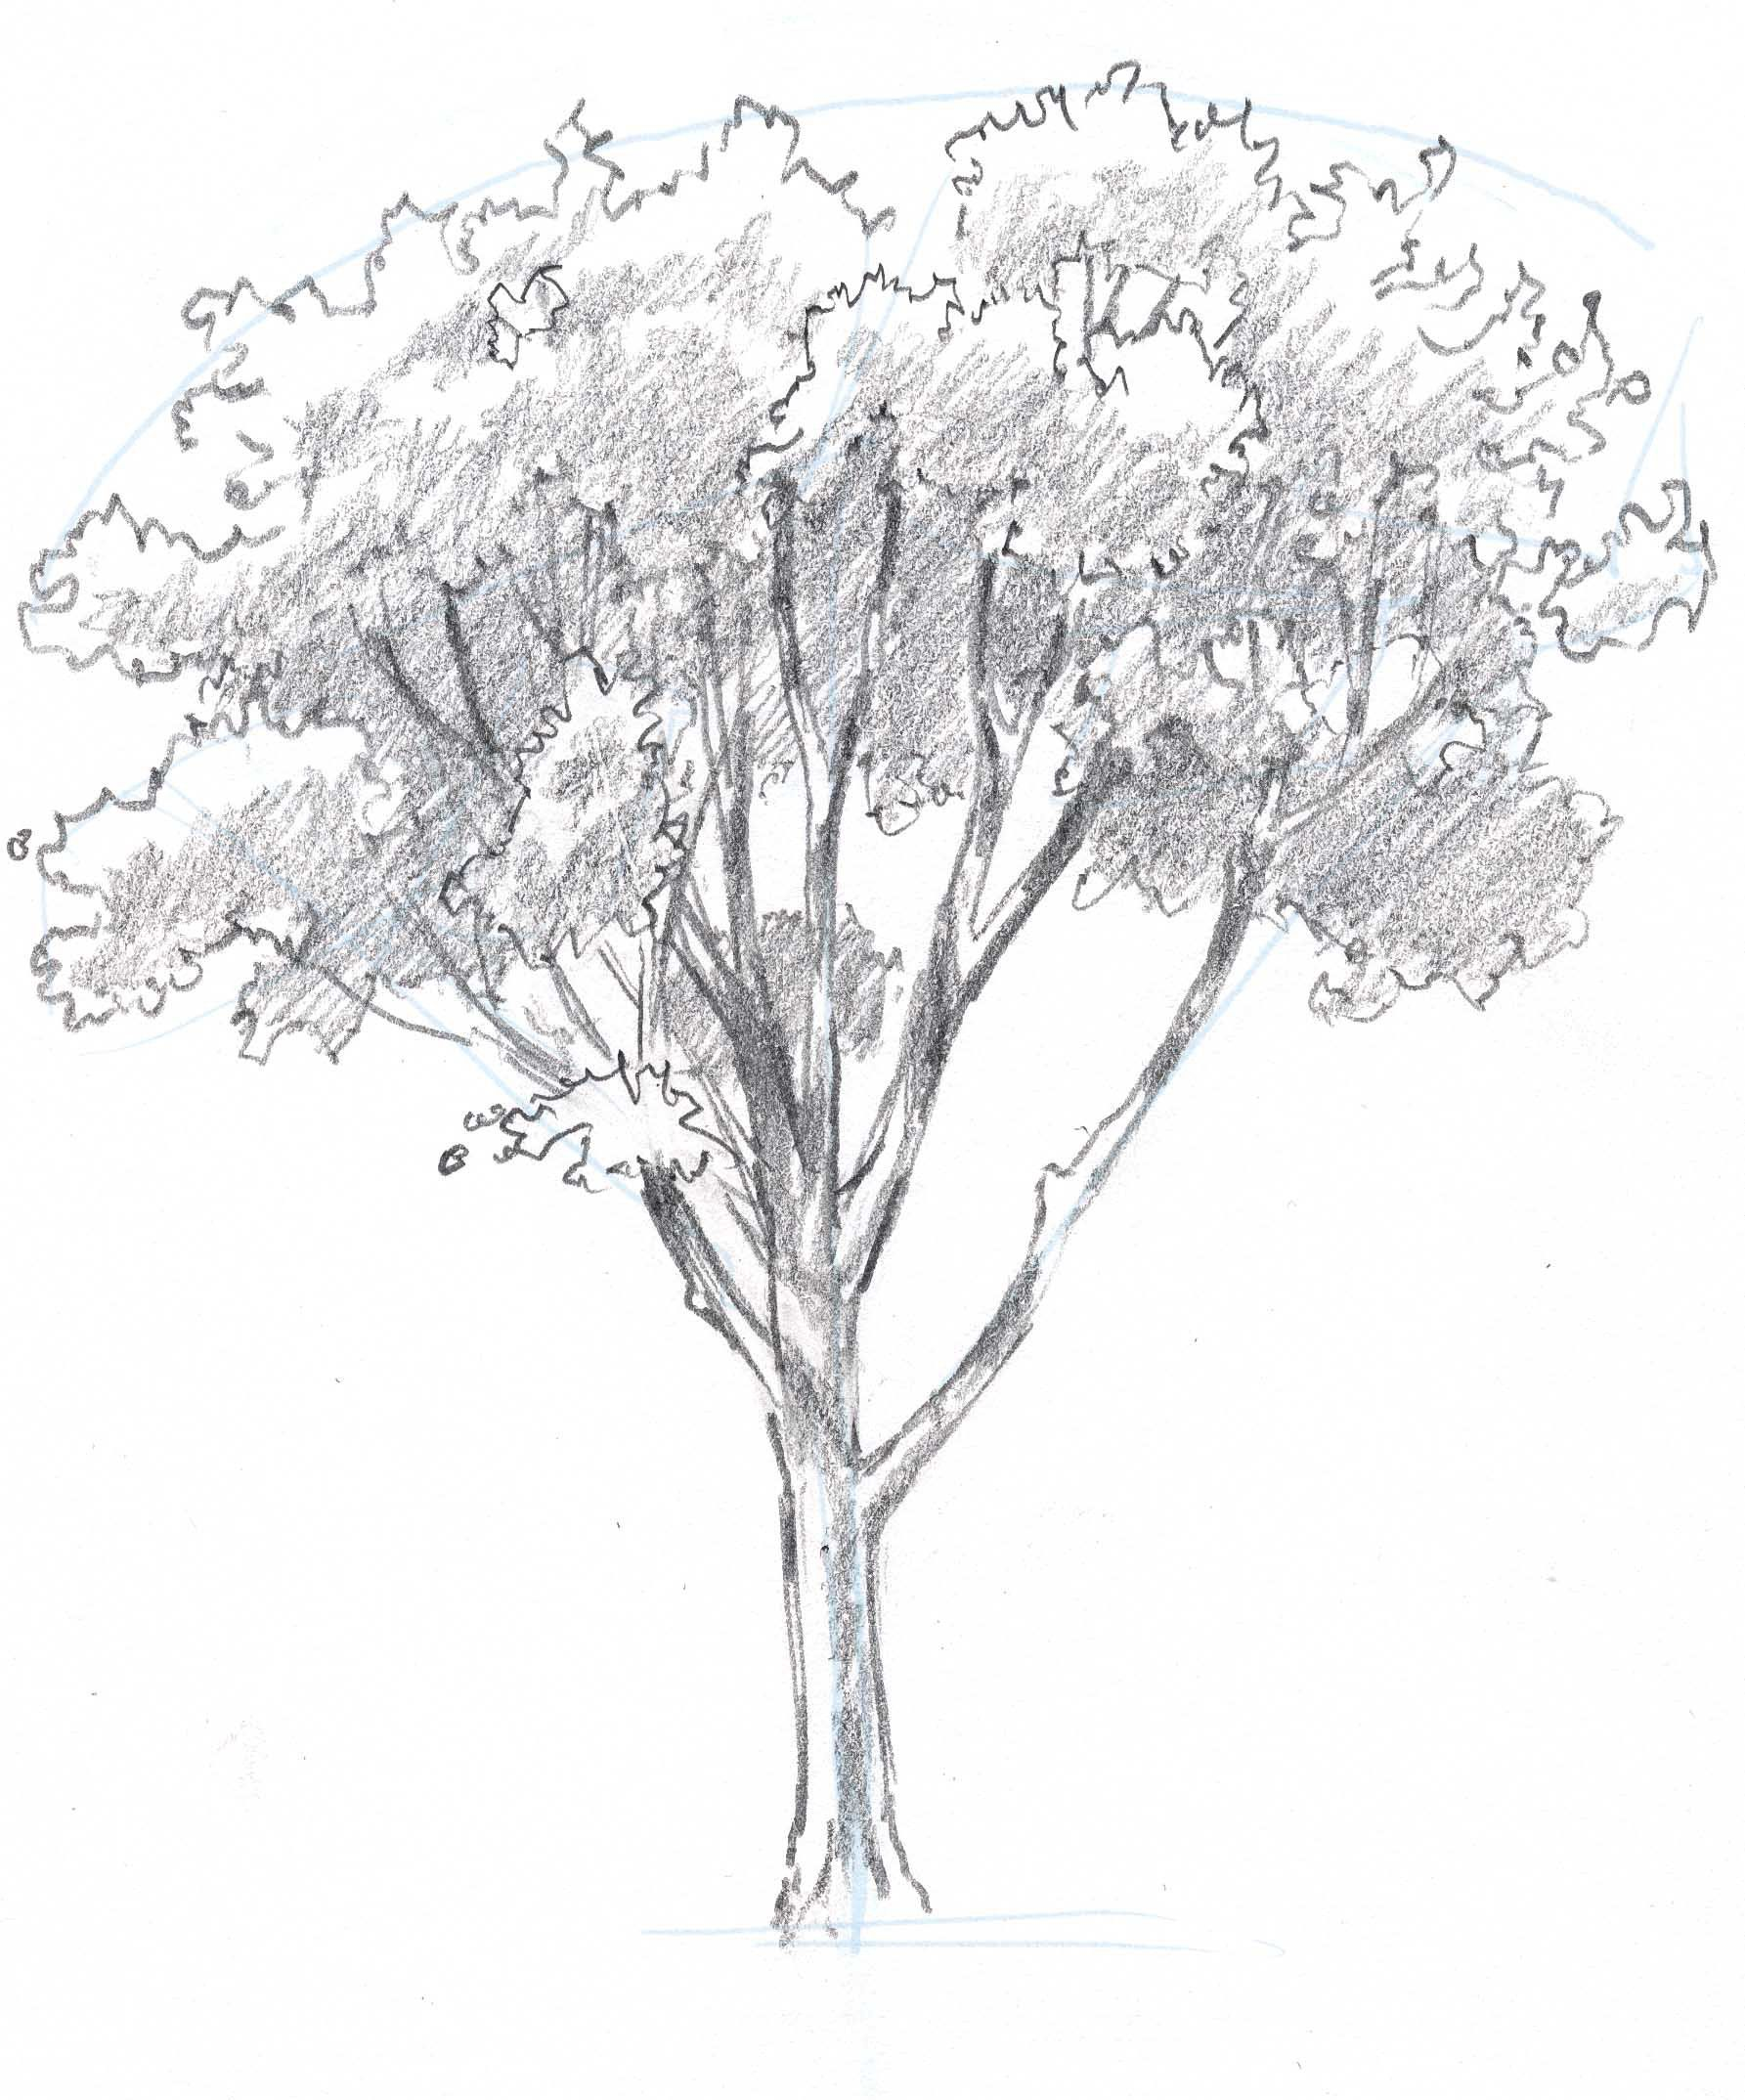 Learn how to draw trees in this simple step by step demonstration of the process of drawing an oak